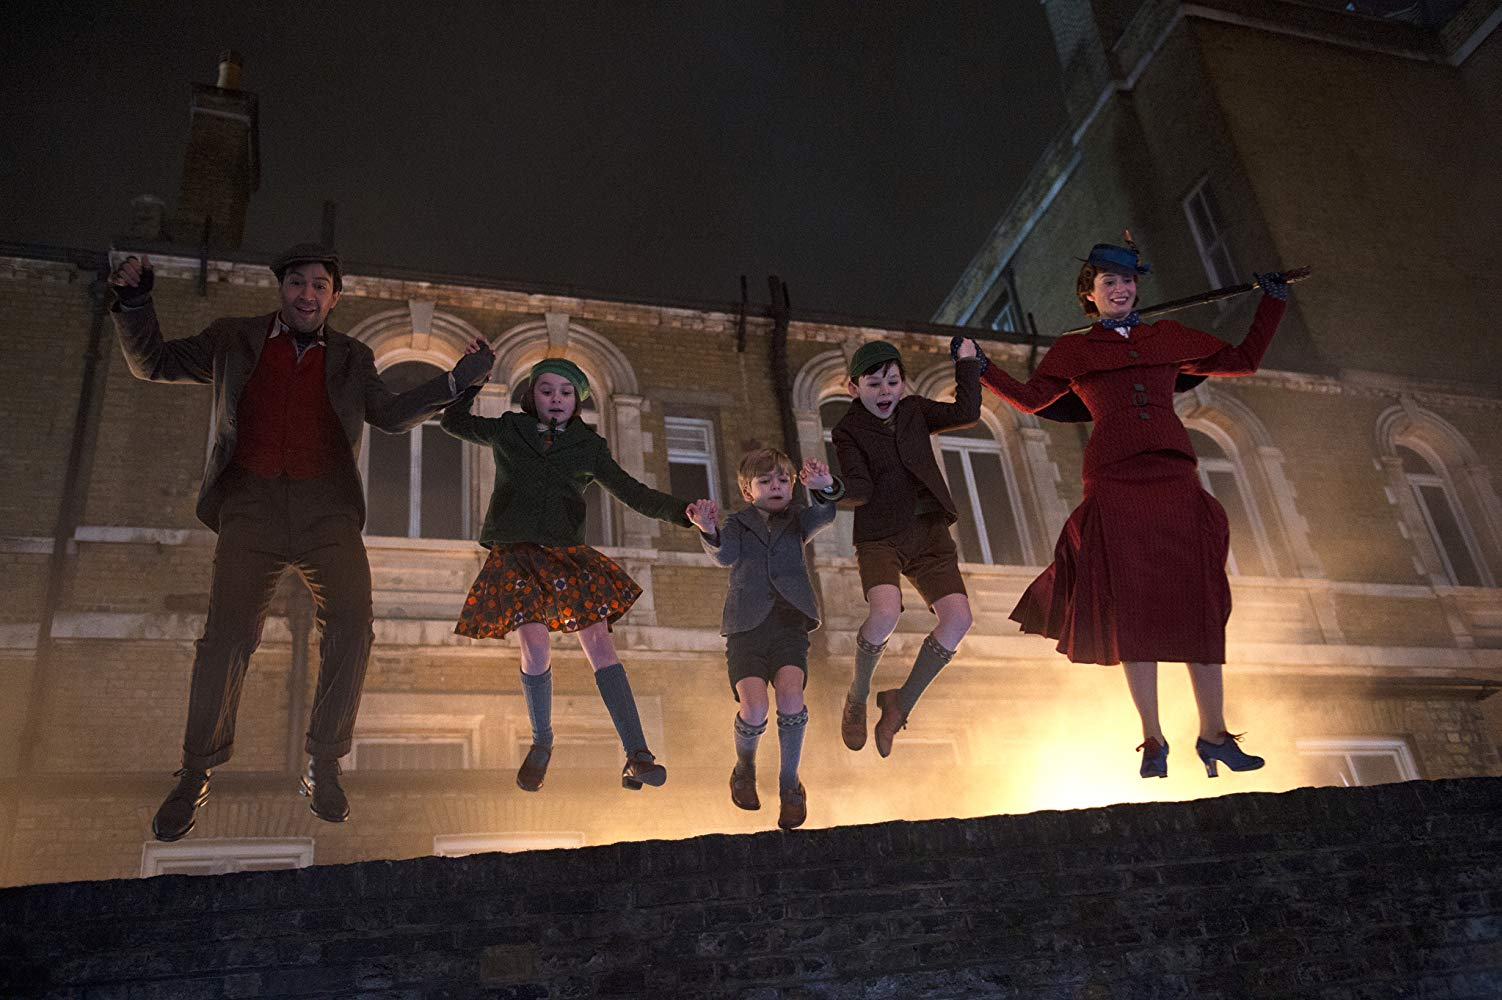 Le Retour de Mary Poppins Rob Marshall